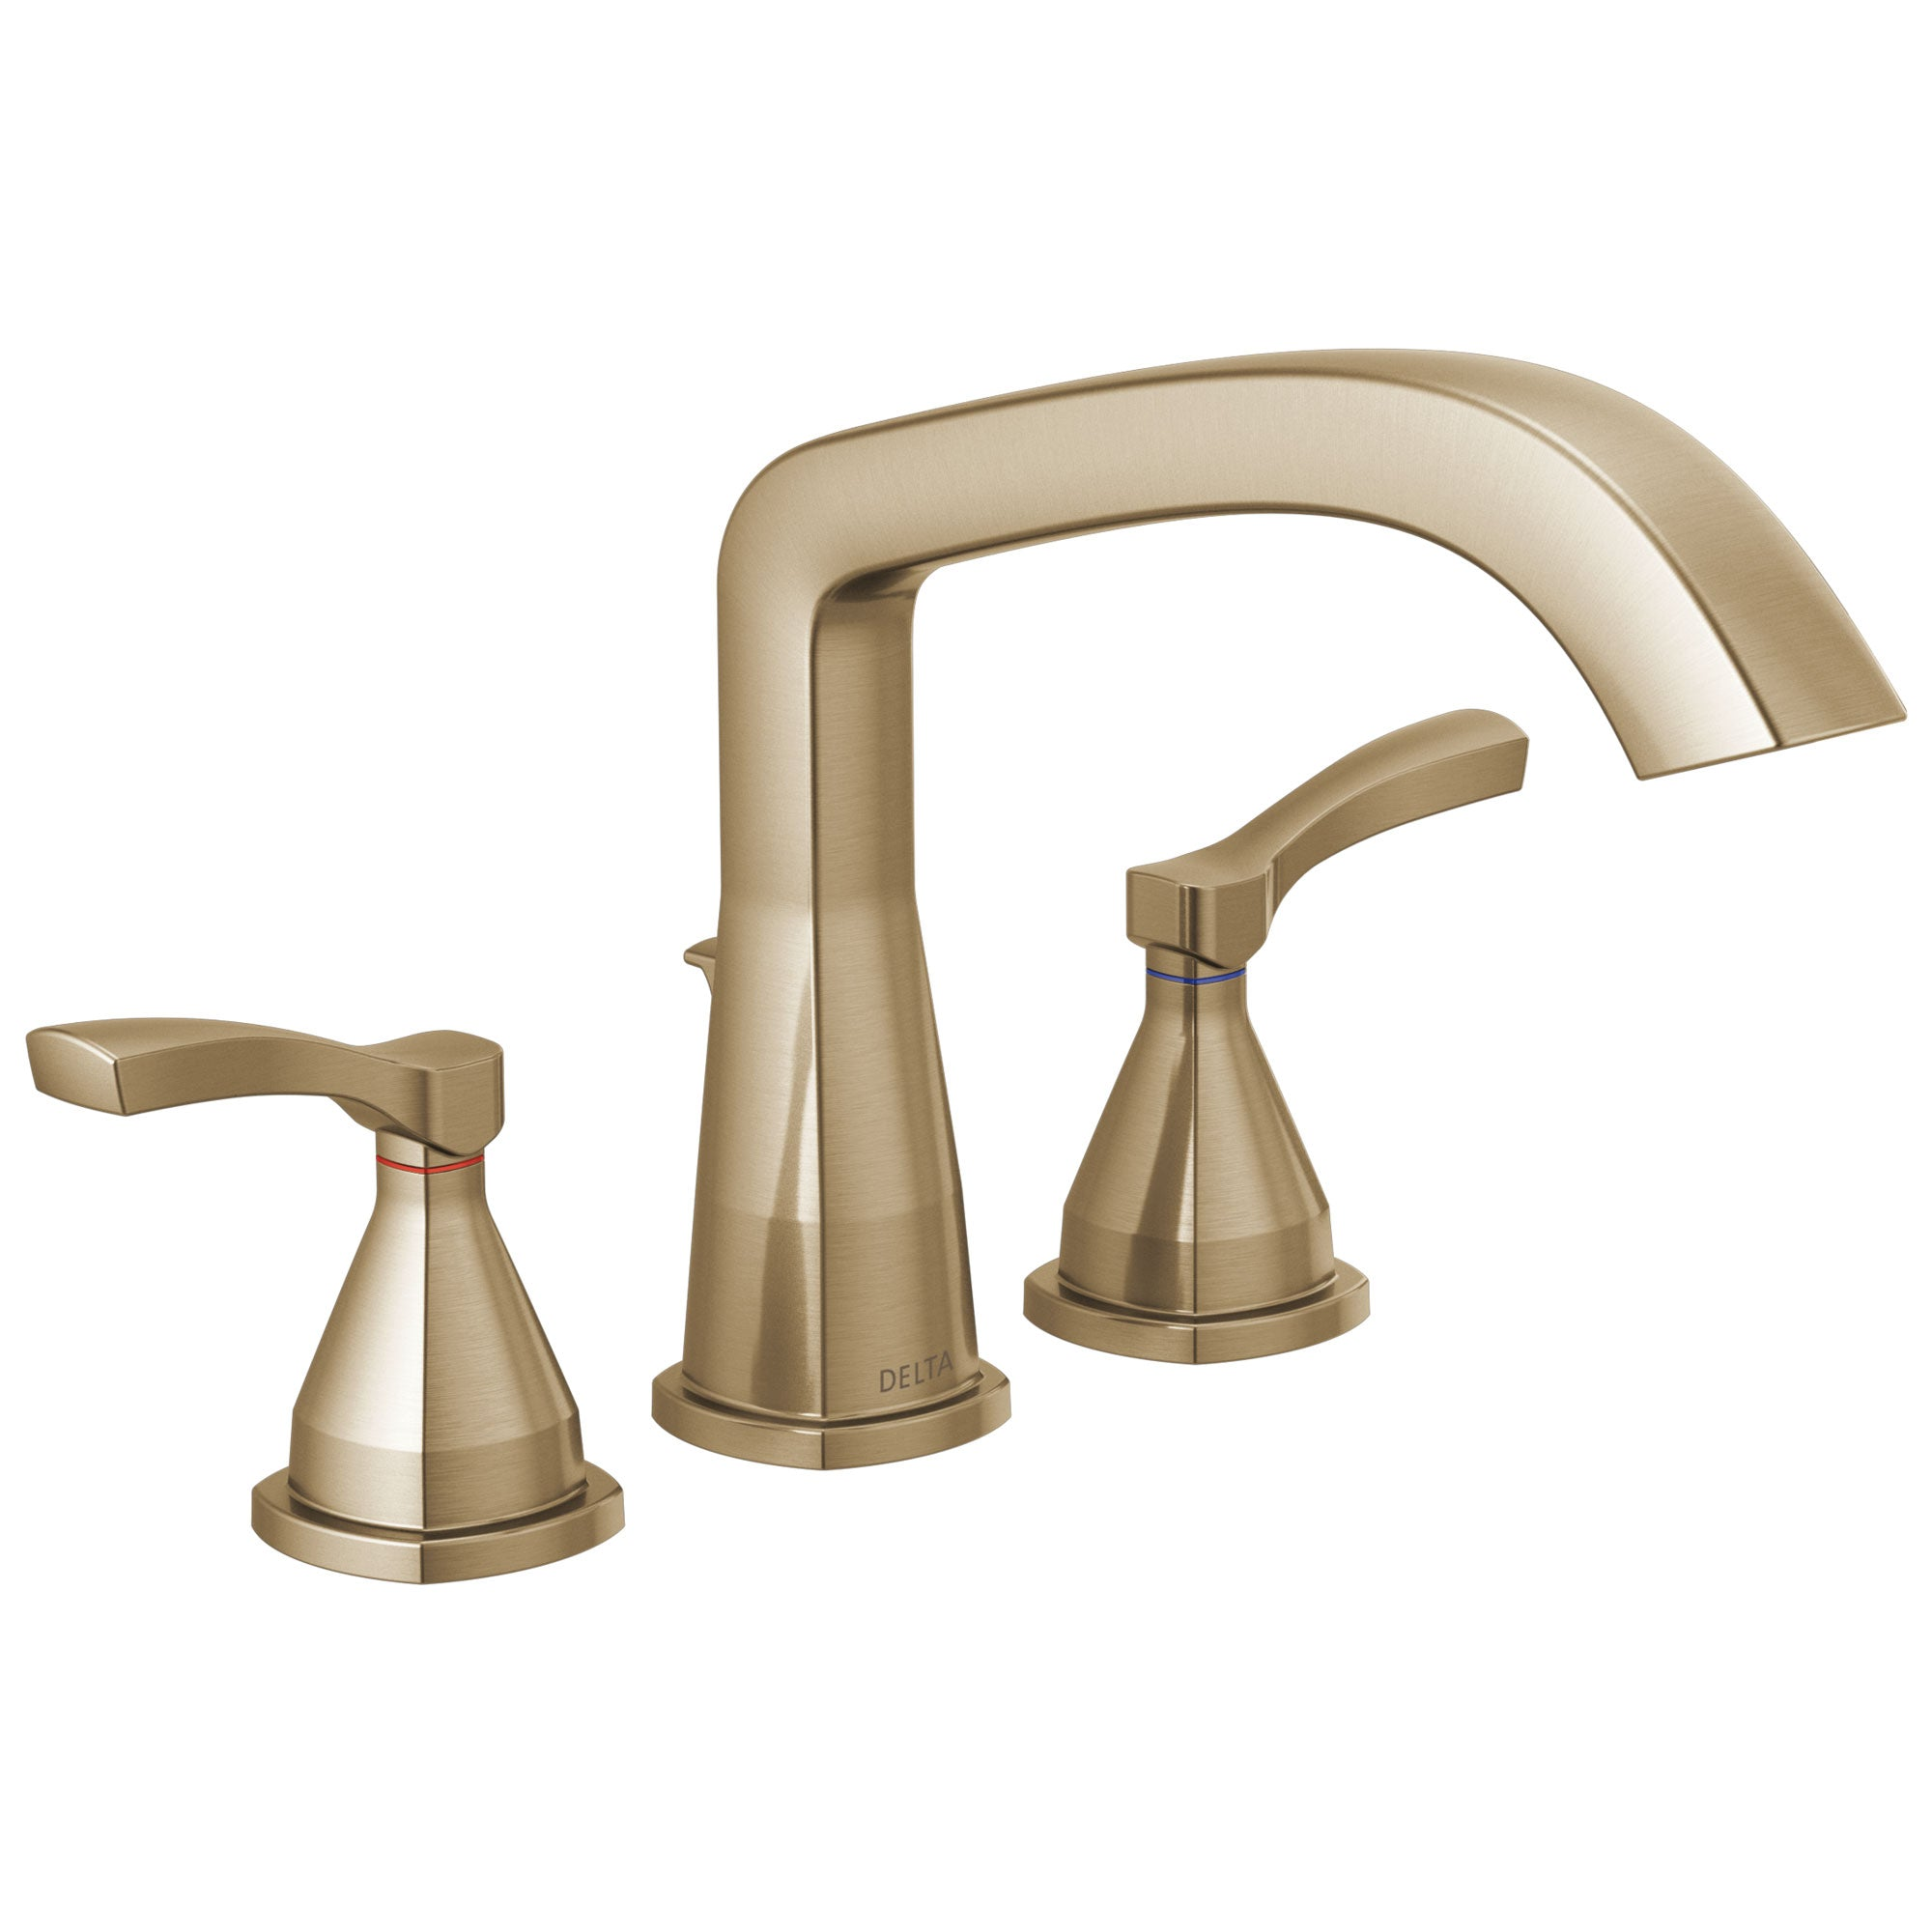 Delta Stryke Collection Champagne Bronze Finish Three Hole Roman Tub Filler Faucet Includes Rough-in Valve and Lever Handles D3156V